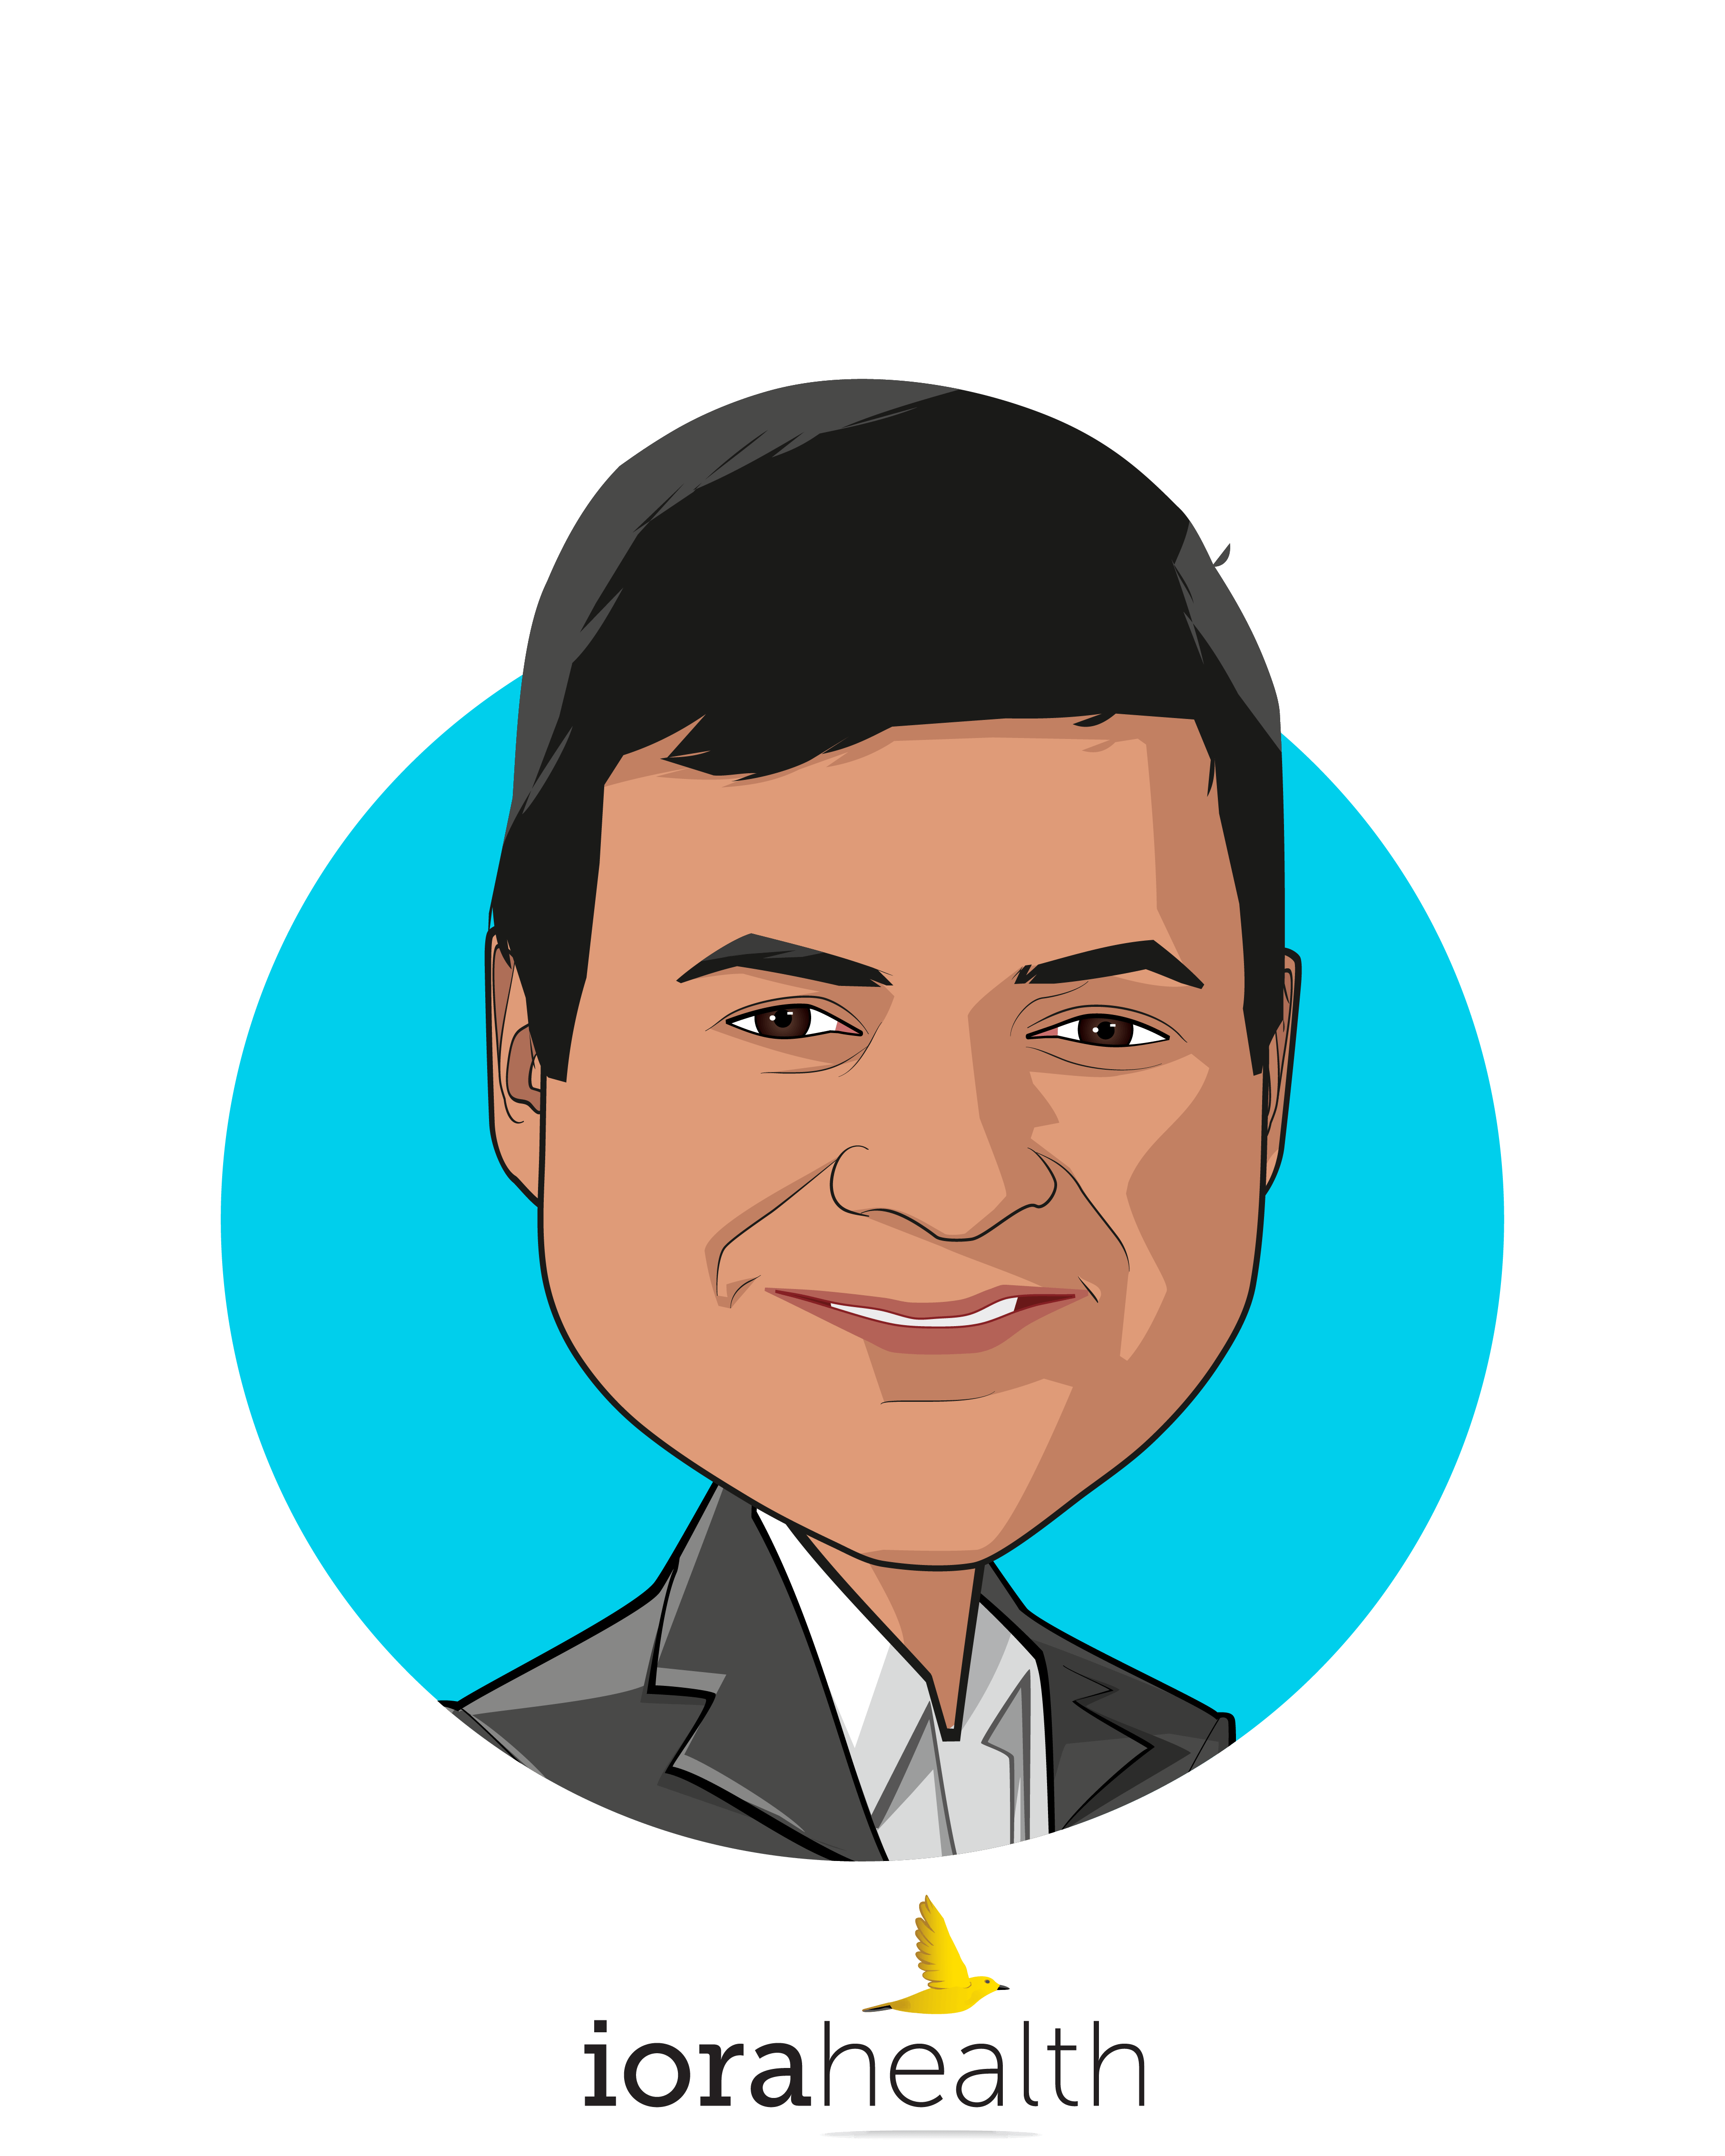 Main caricature of Rushika Fernandopulle, MD, MPP, who is speaking at HLTH and is CEO & Co-Founder at Iora Health